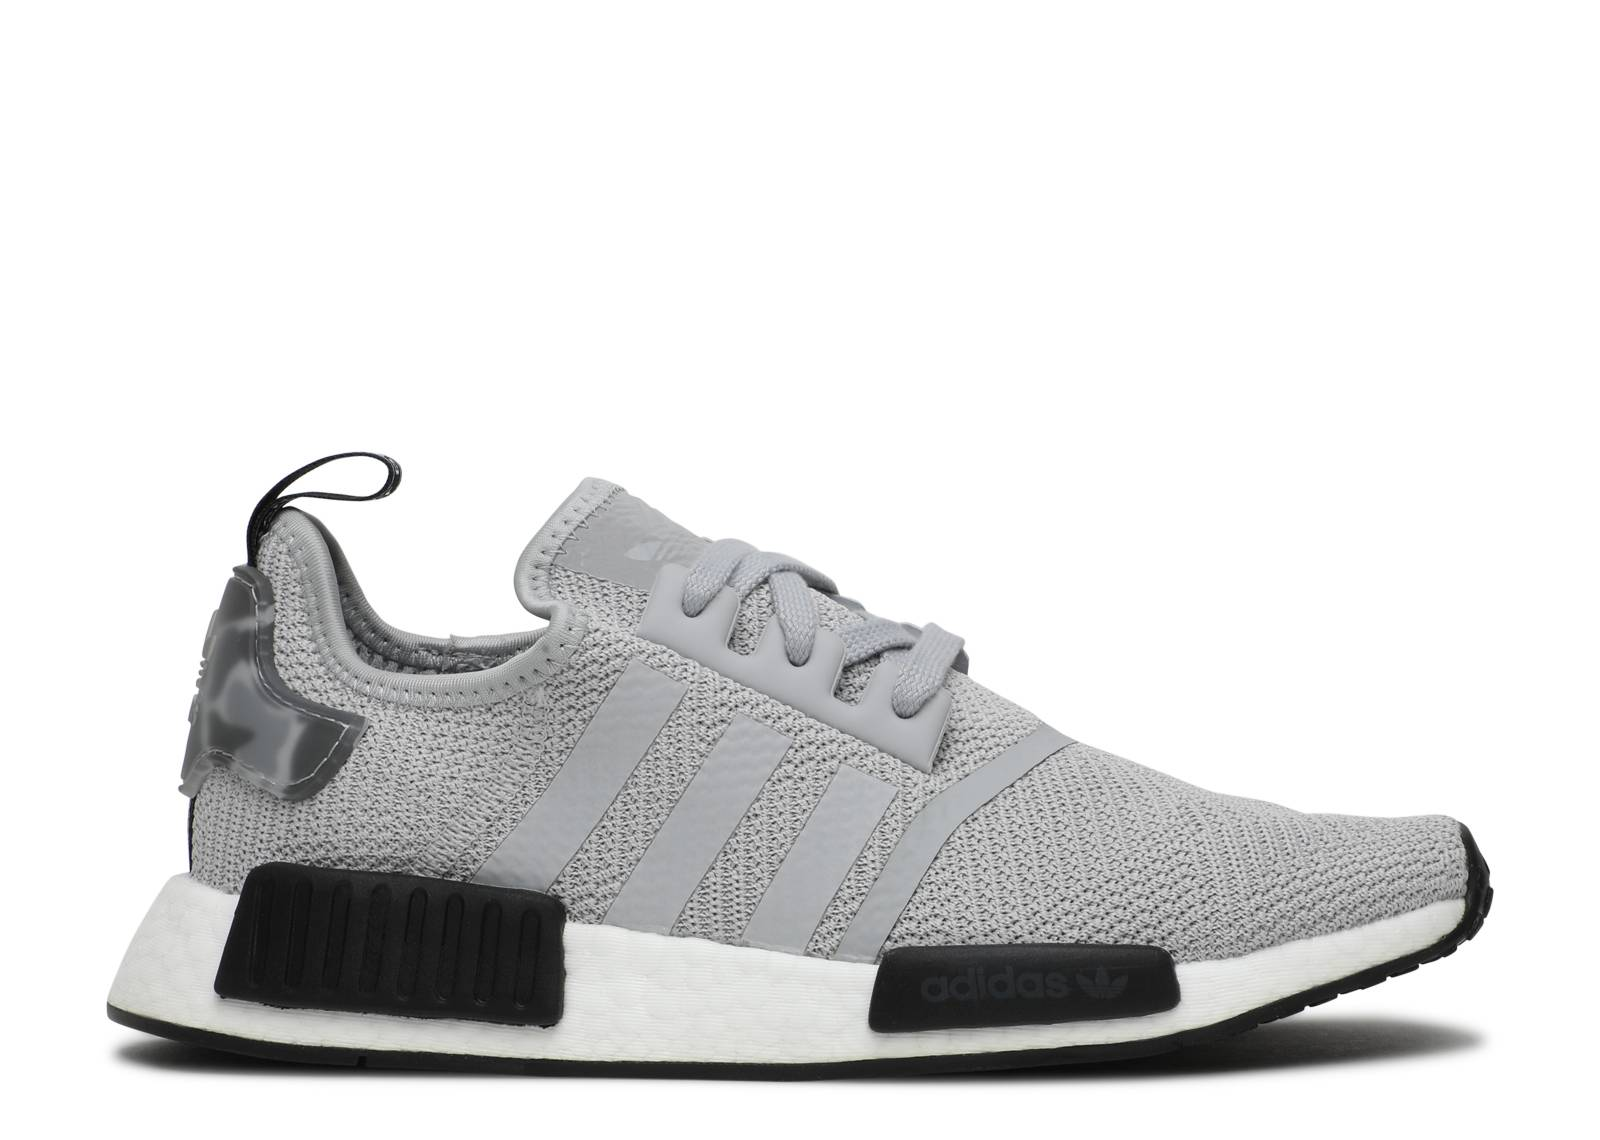 6965935ed Adidas NMD - adidas Originals Men s   Women s Shoes